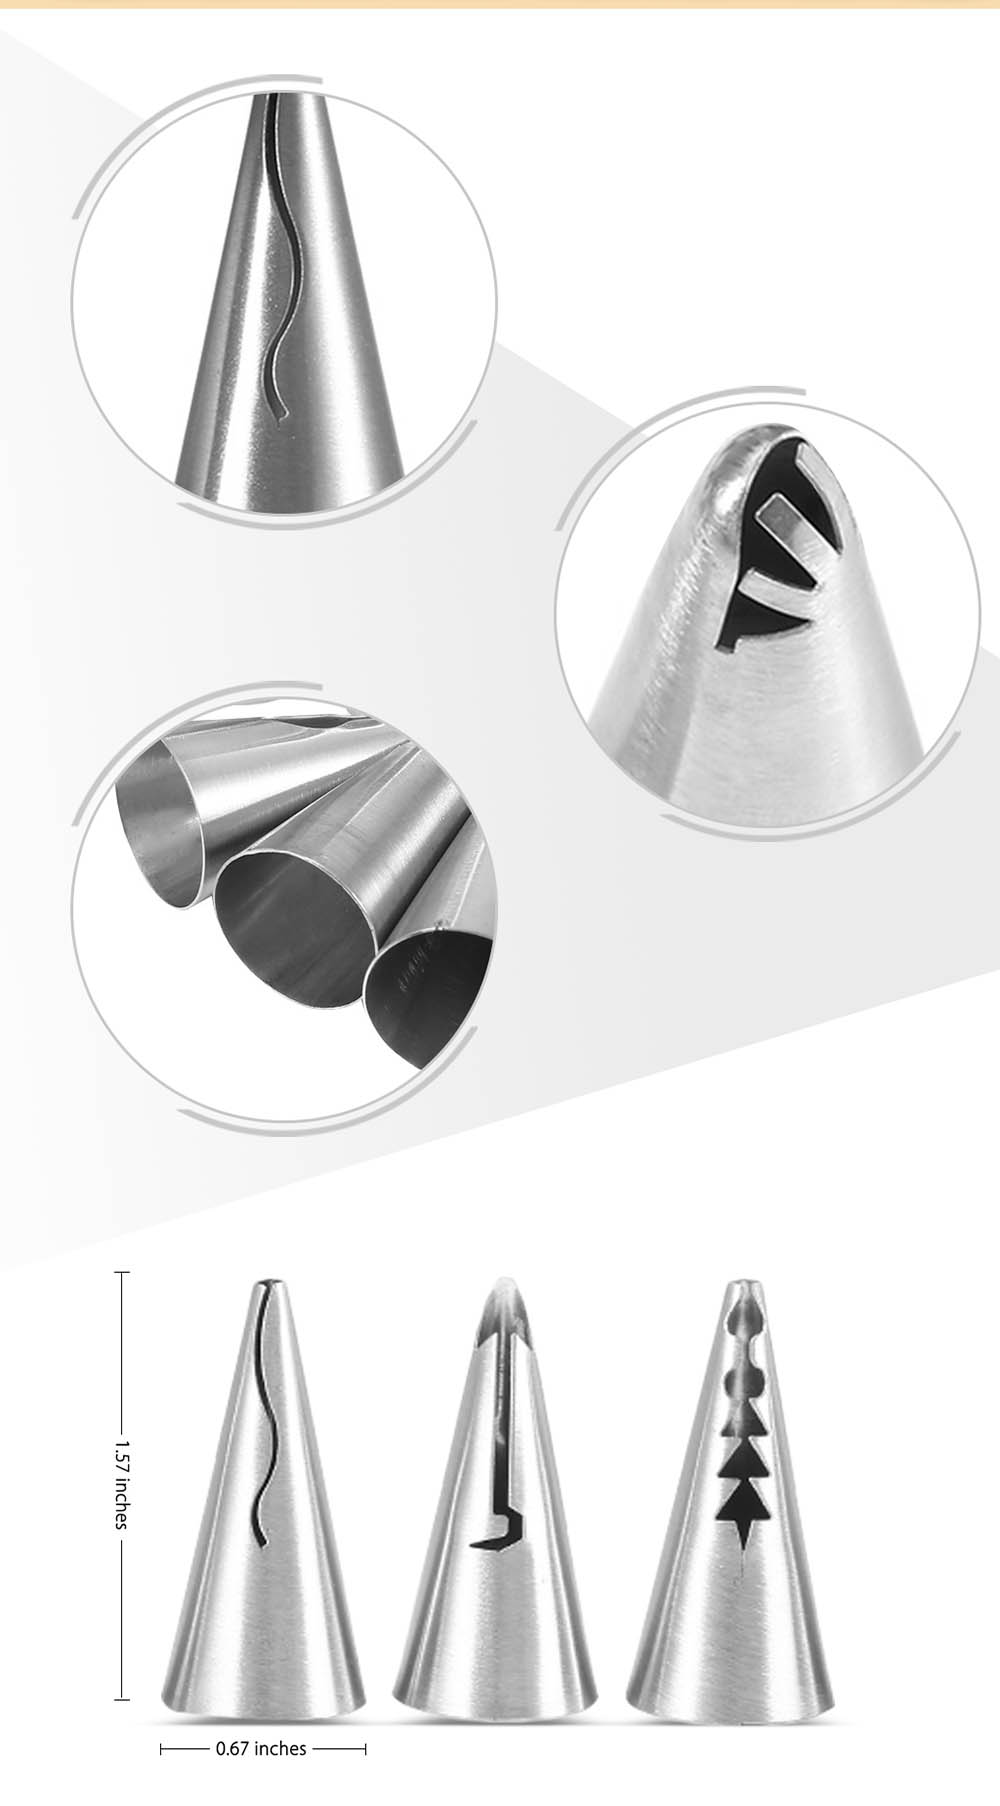 8pcs Stainless Steel Buttercream Icing Piping Nozzles DIY Baking Tools